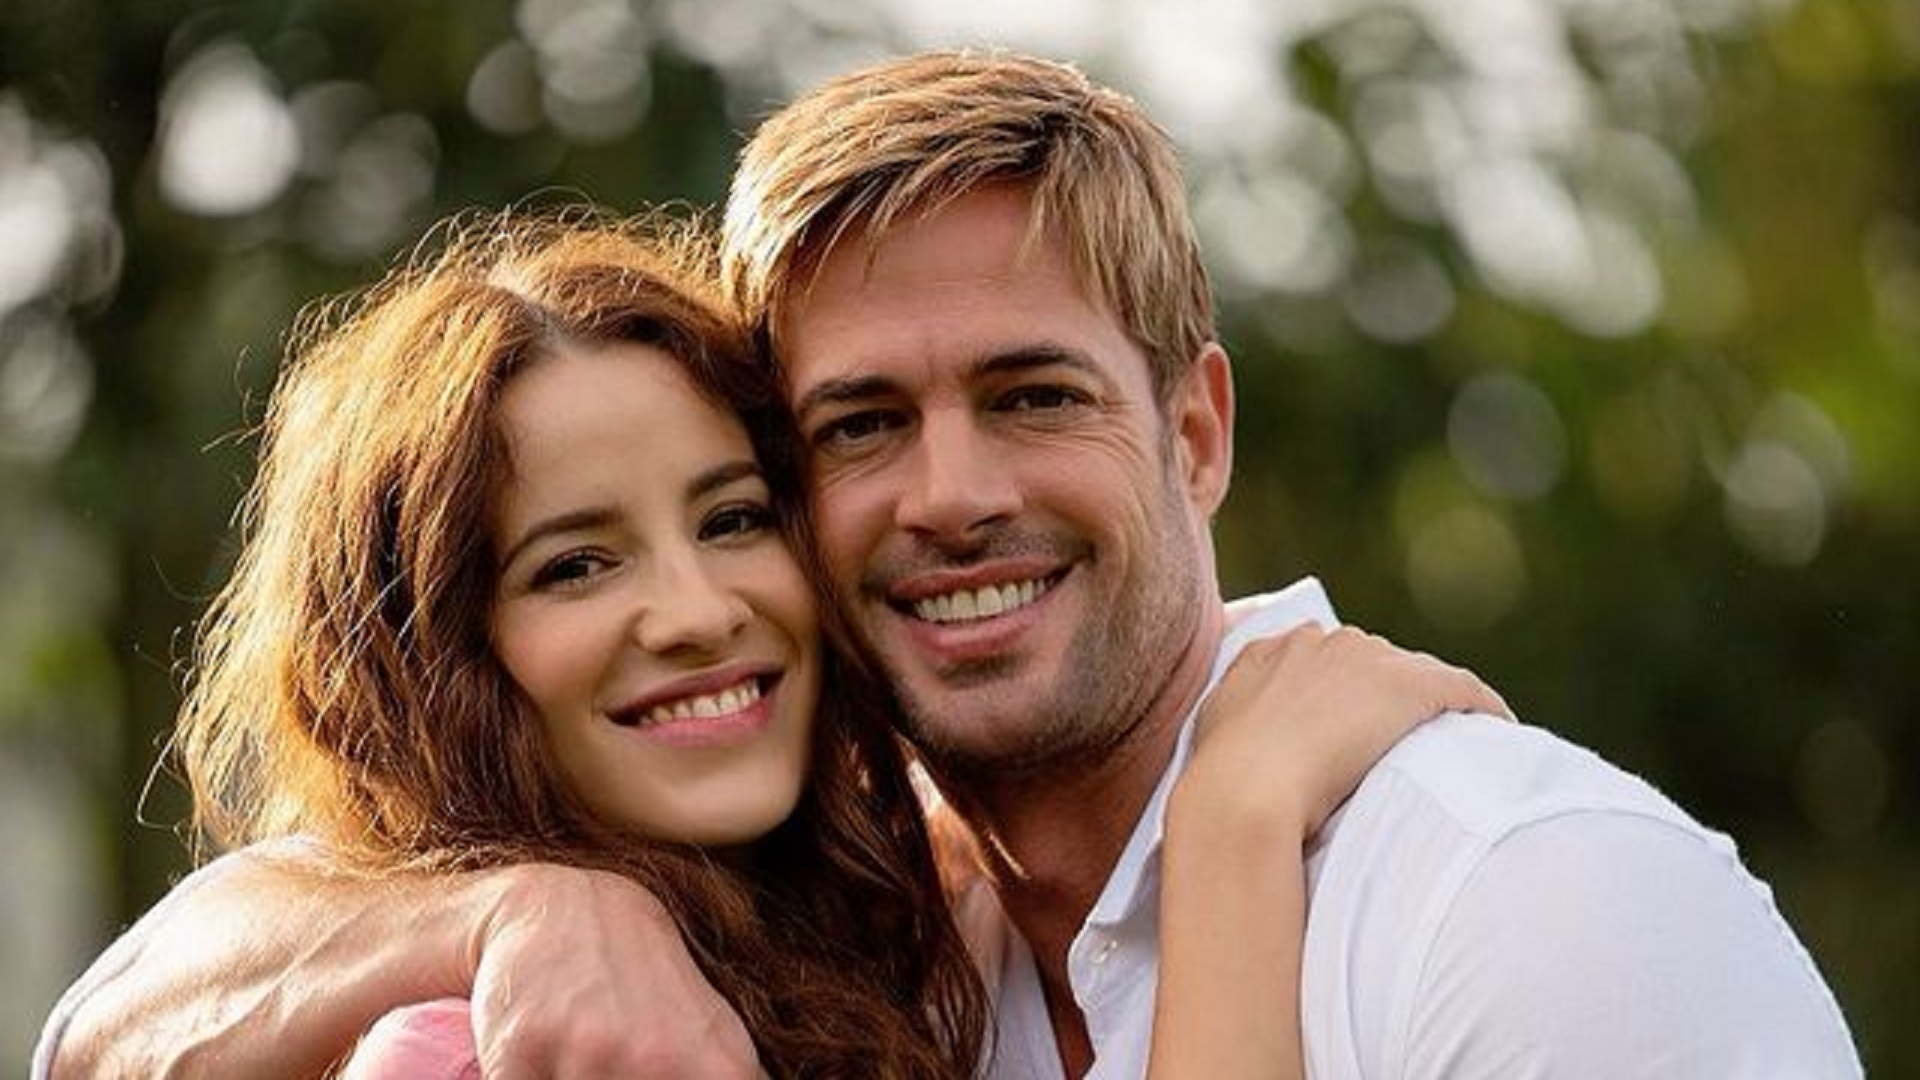 Conflictos en Colombia afectan telenovela de William Levy